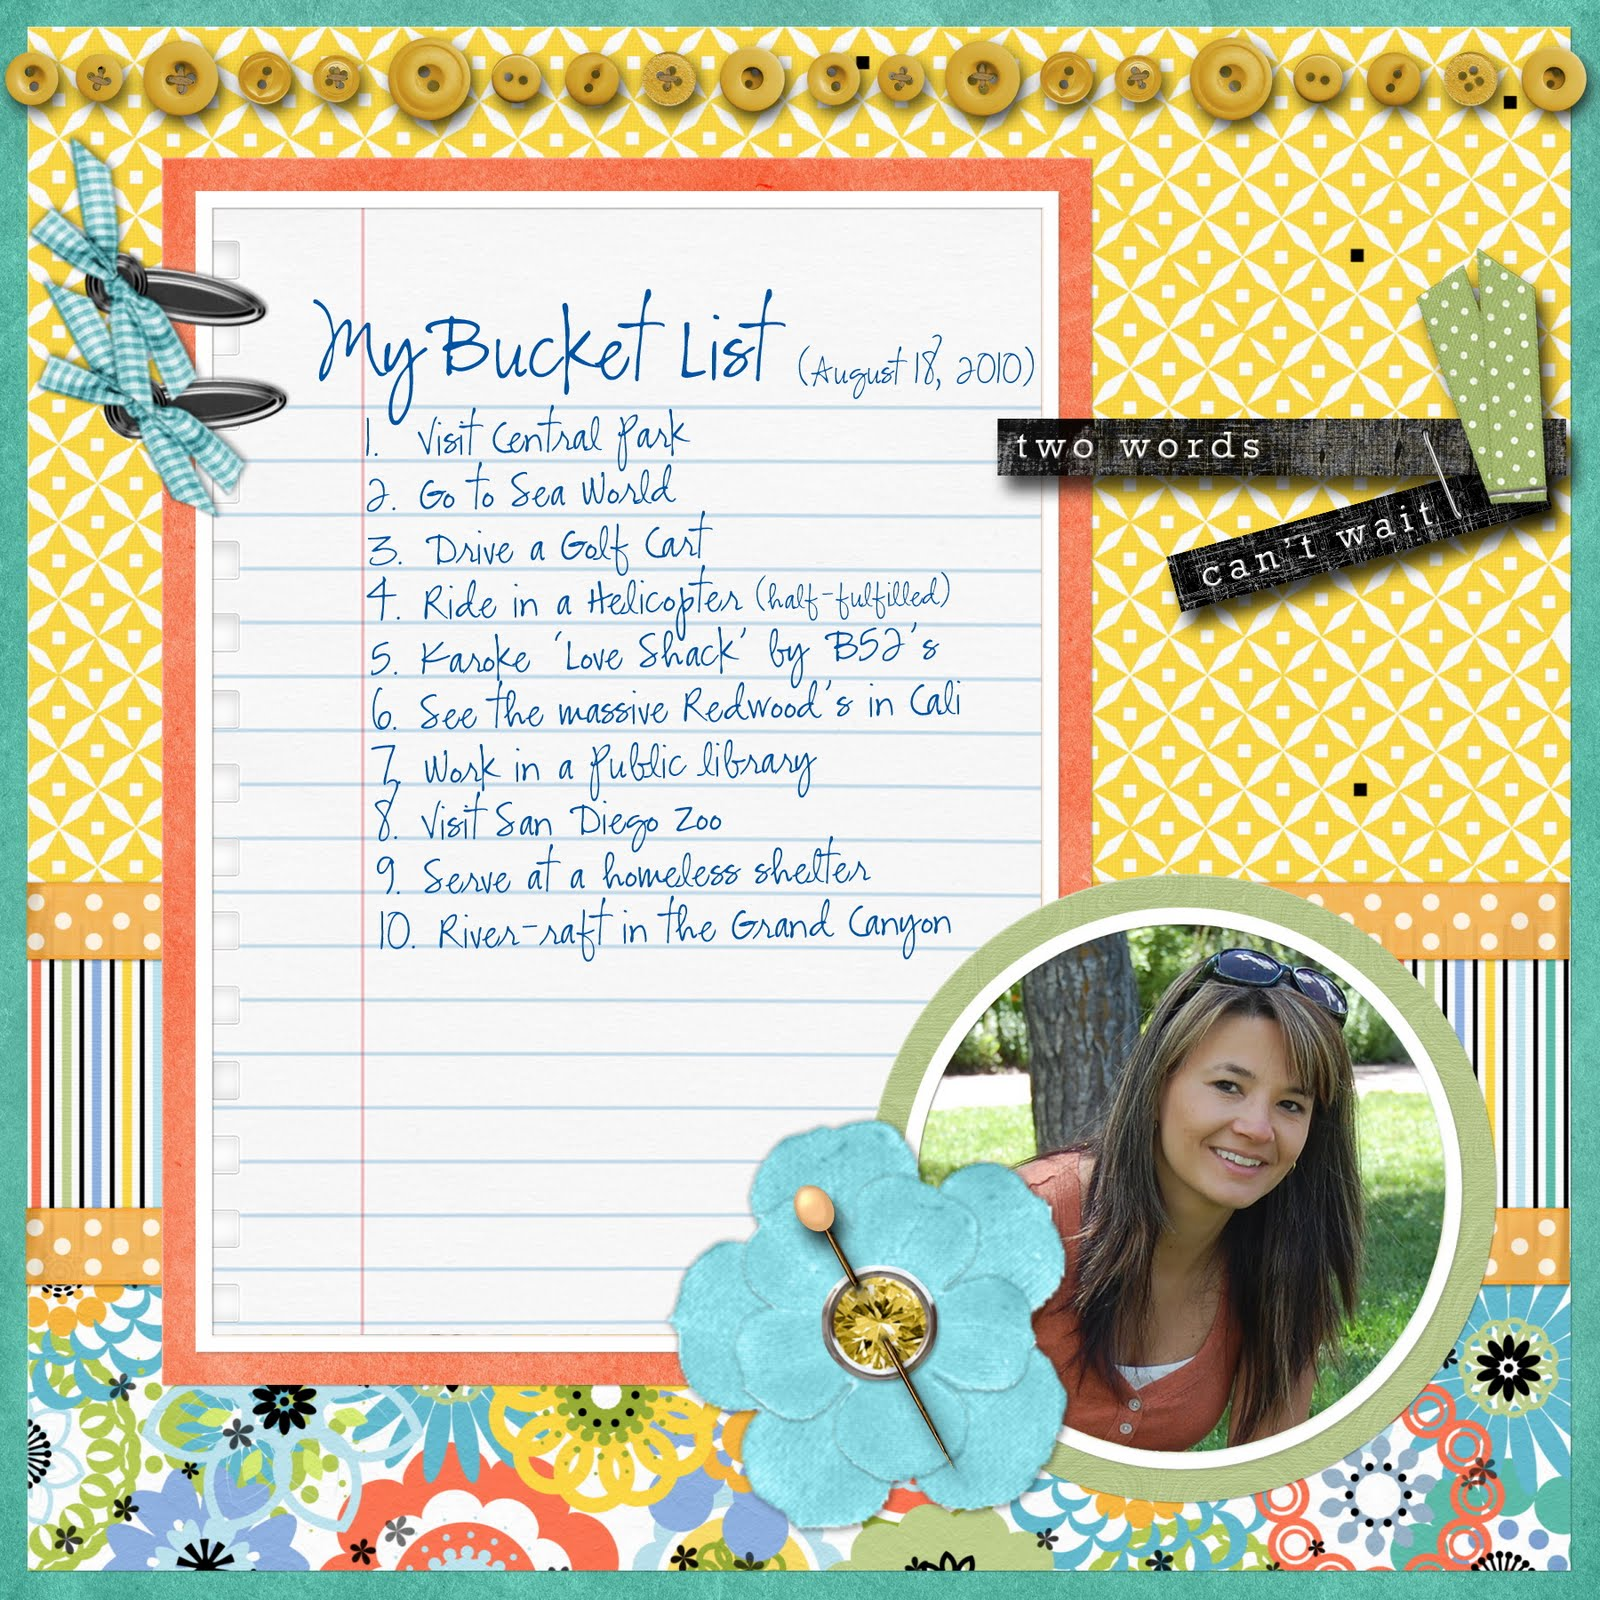 Scrapbook ideas list - It Warrants A Permanence About It So I Created A Scrapbook Layout Of My Personal Bucket List Here S The Picture For The Day